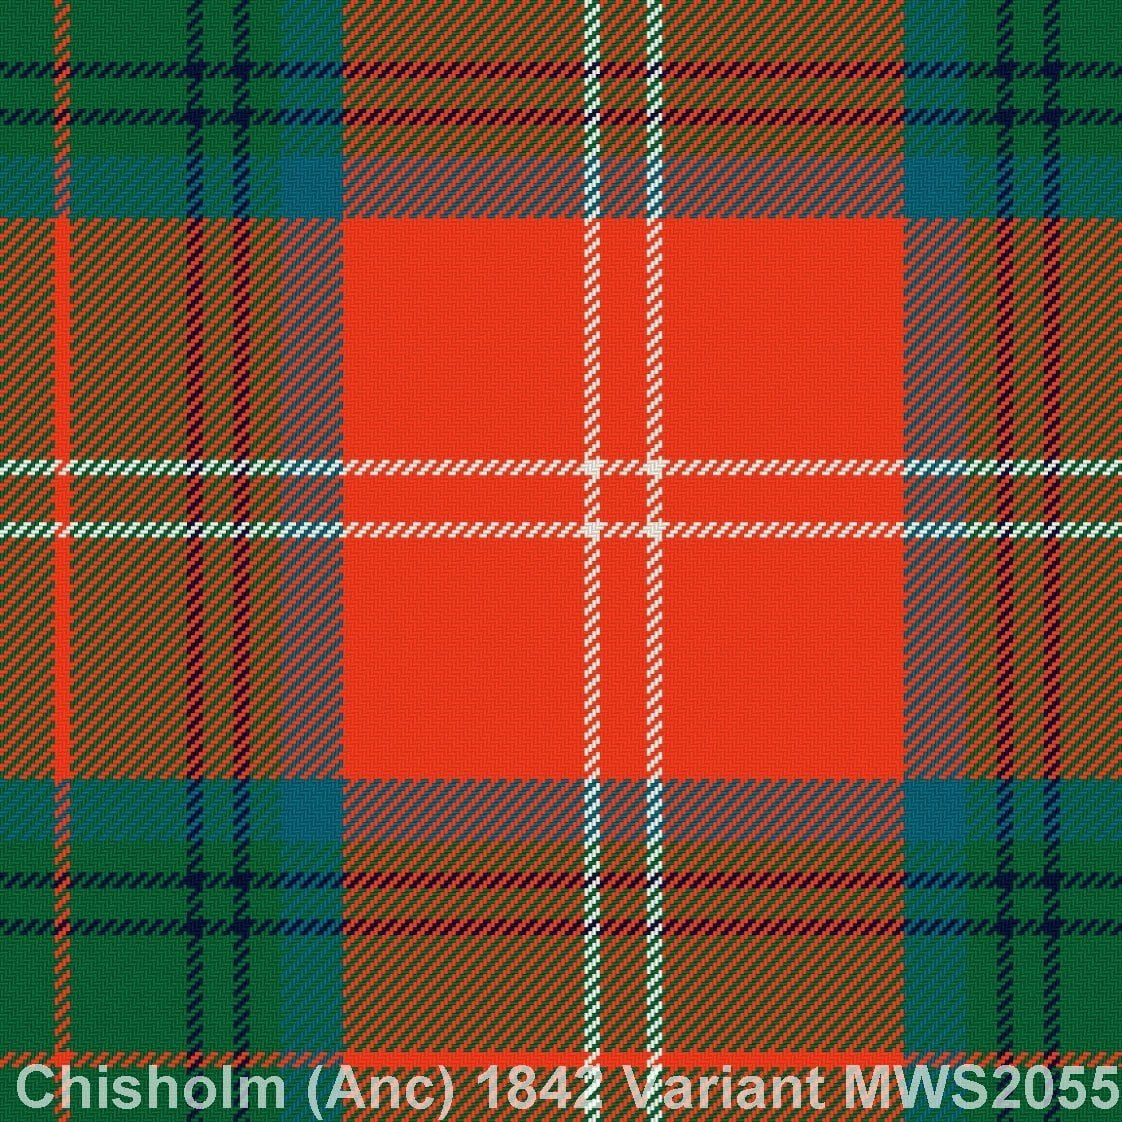 Chisholm Ancient 1842 Variant